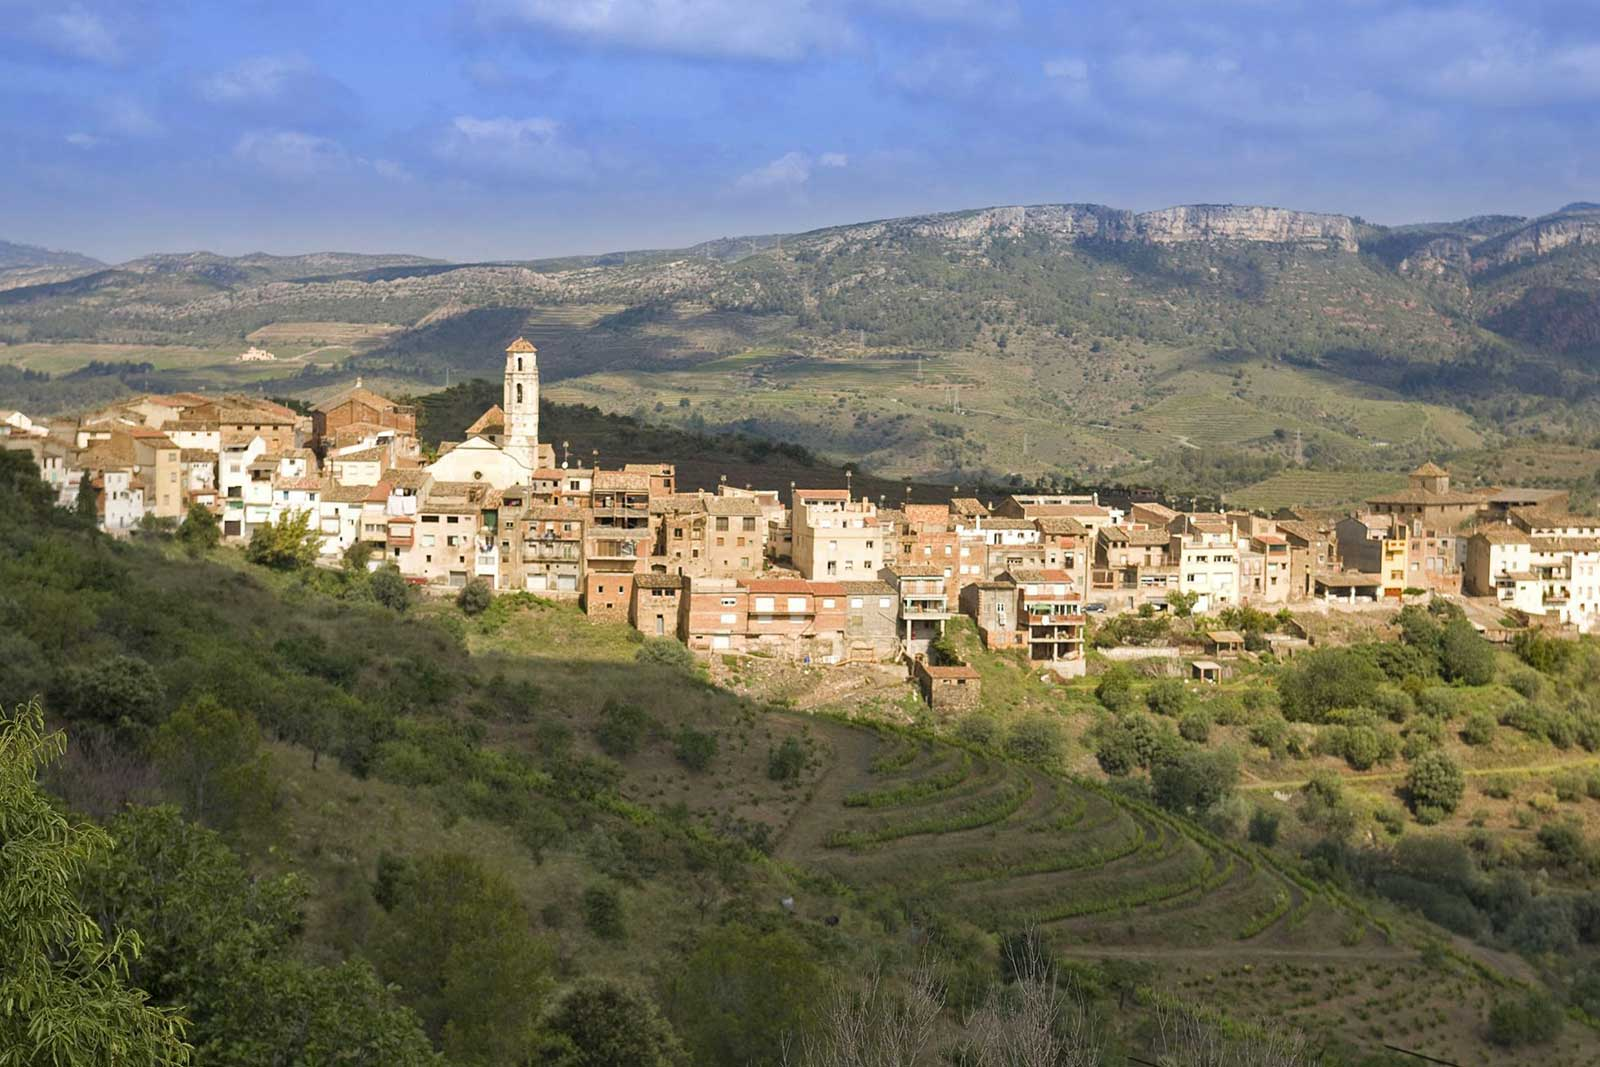 A village in the Priorat region of Catalunya. ©DOQ Priorat